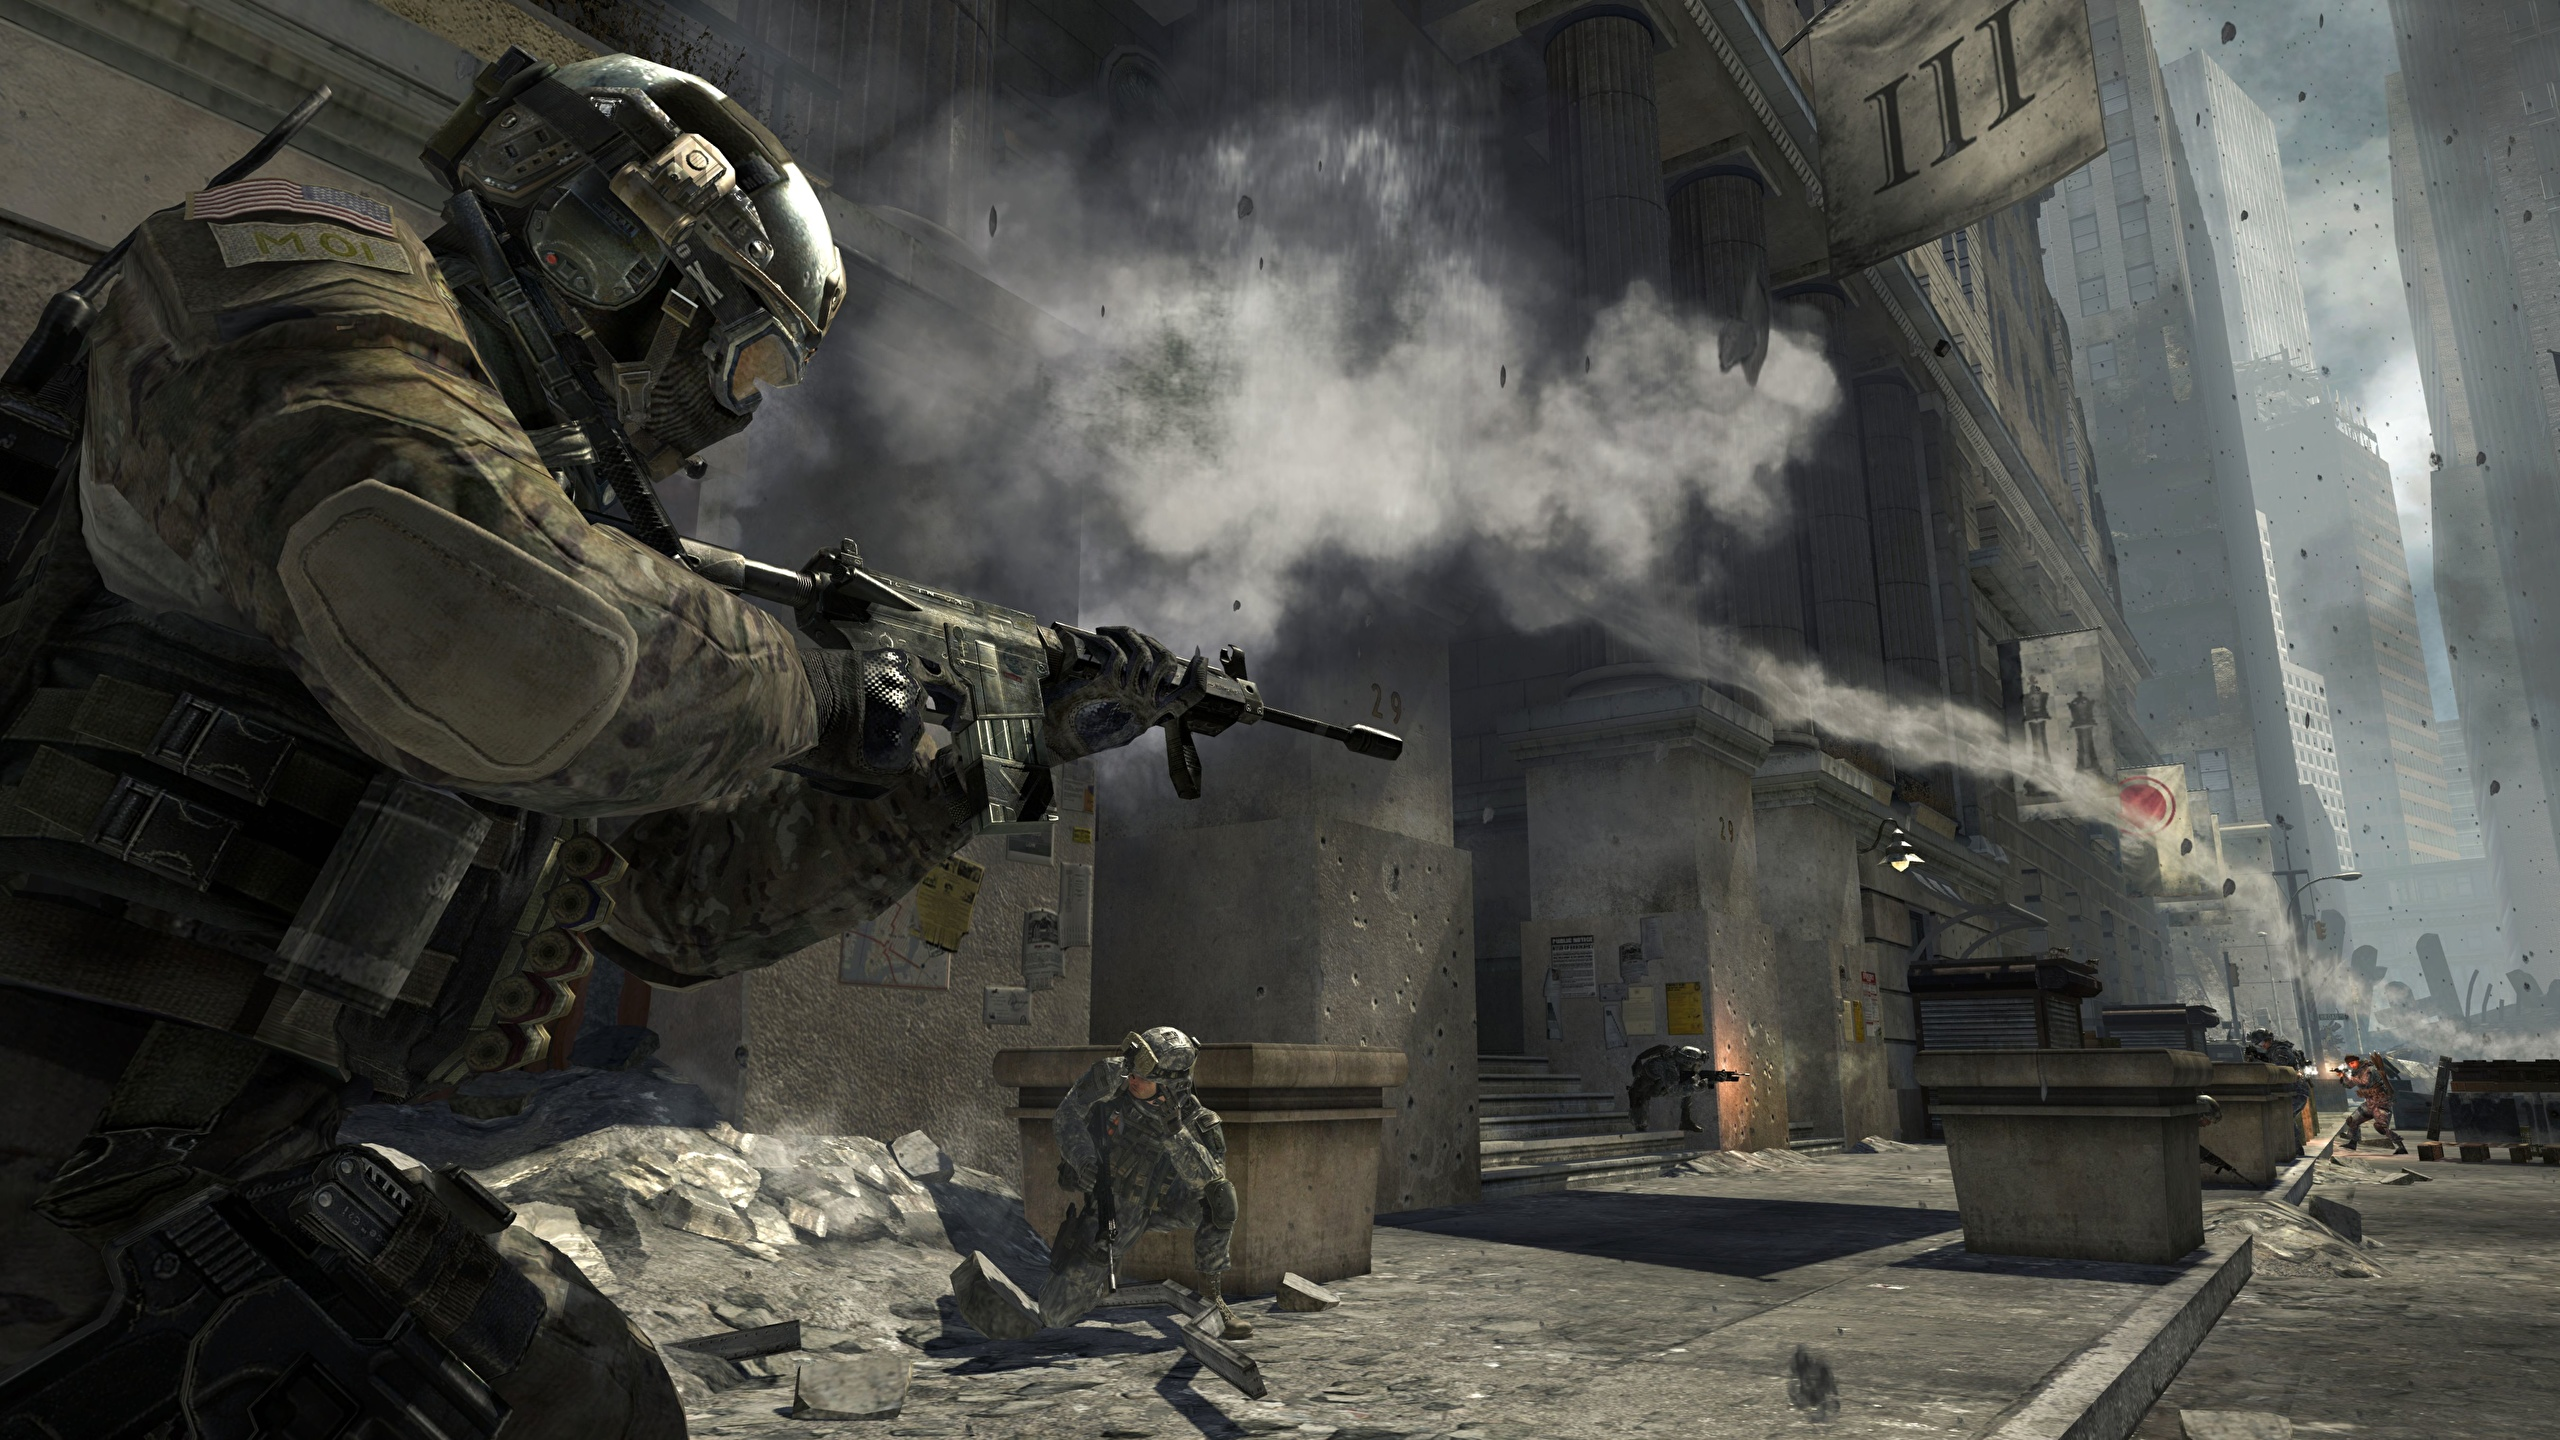 Photo Call Of Duty Call Of Duty 4 Modern Warfare Games 2560x1440